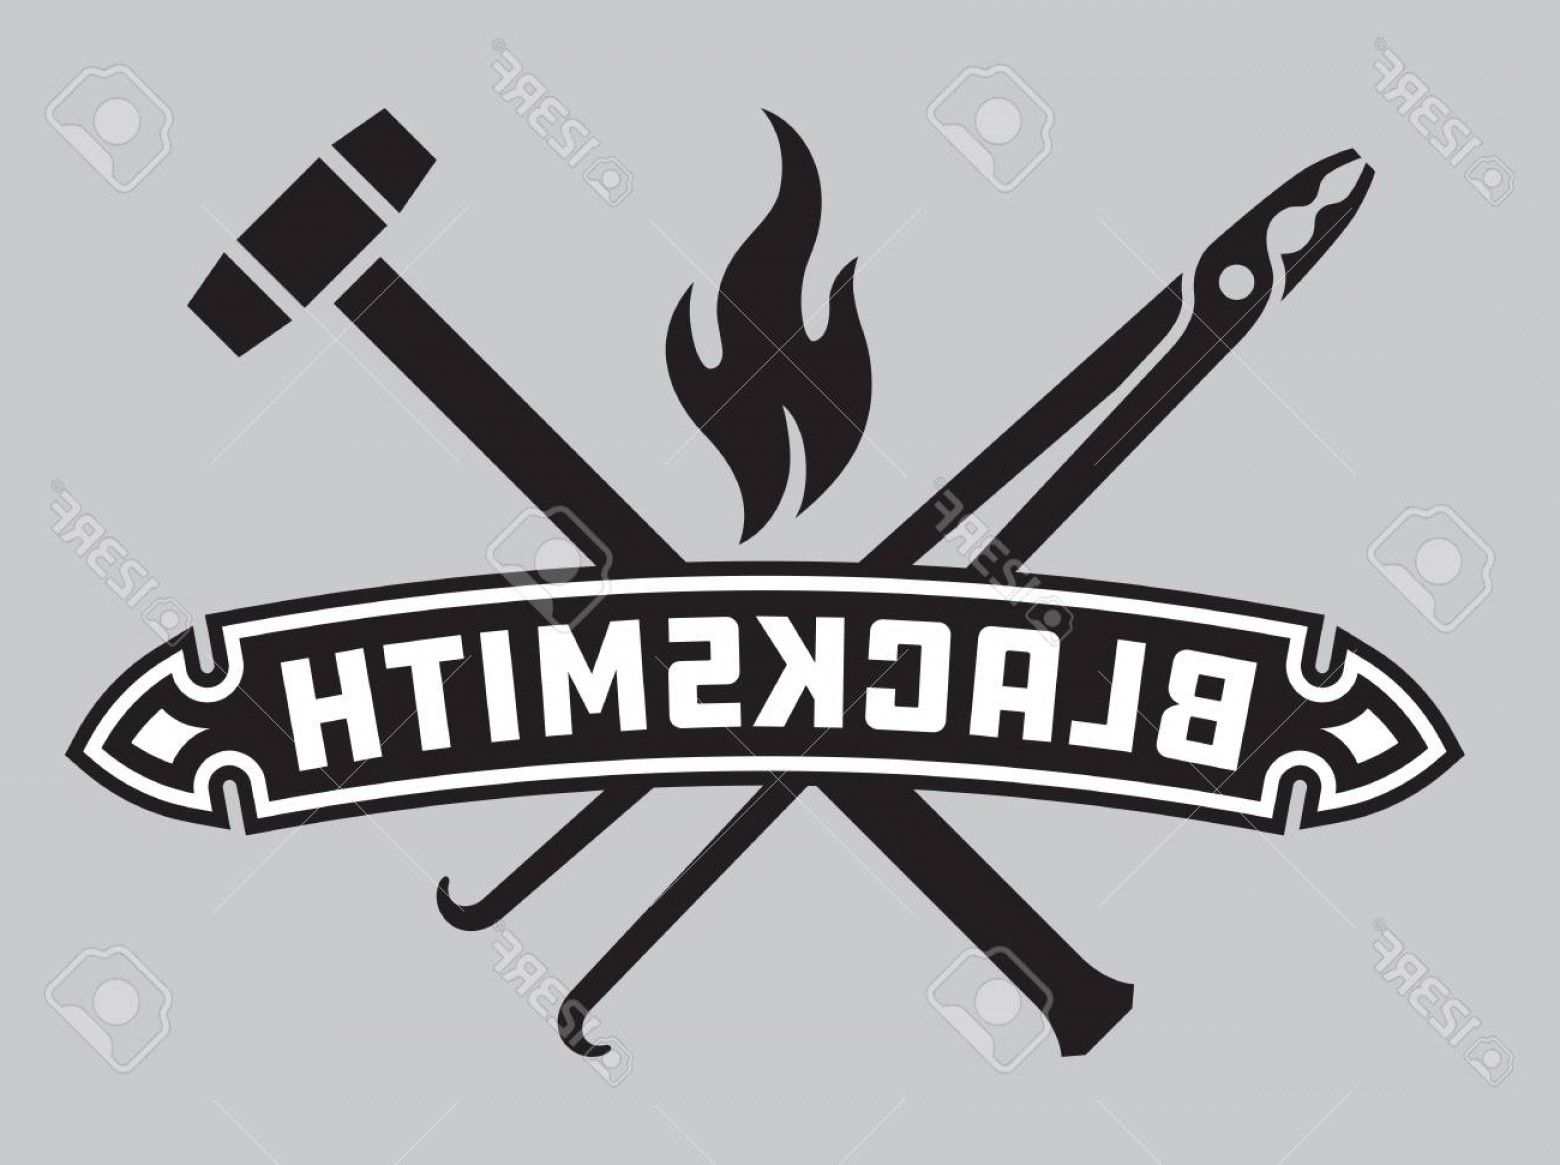 1560x1165 Photostock Vector Blacksmith Vector Emblem Or Badge Retro Style